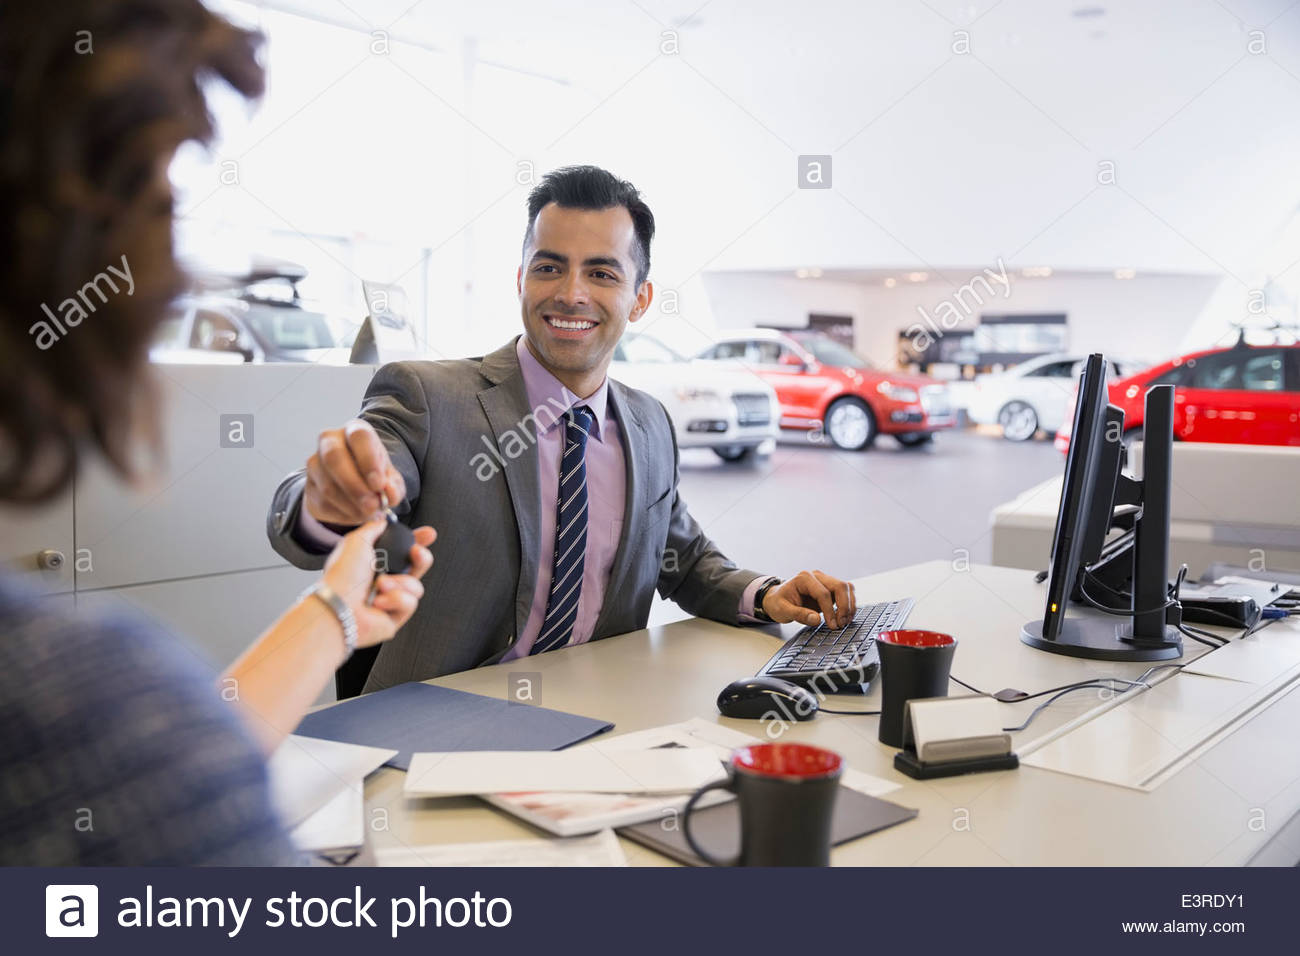 Salesman giving keys to woman in car dealership - Stock Image